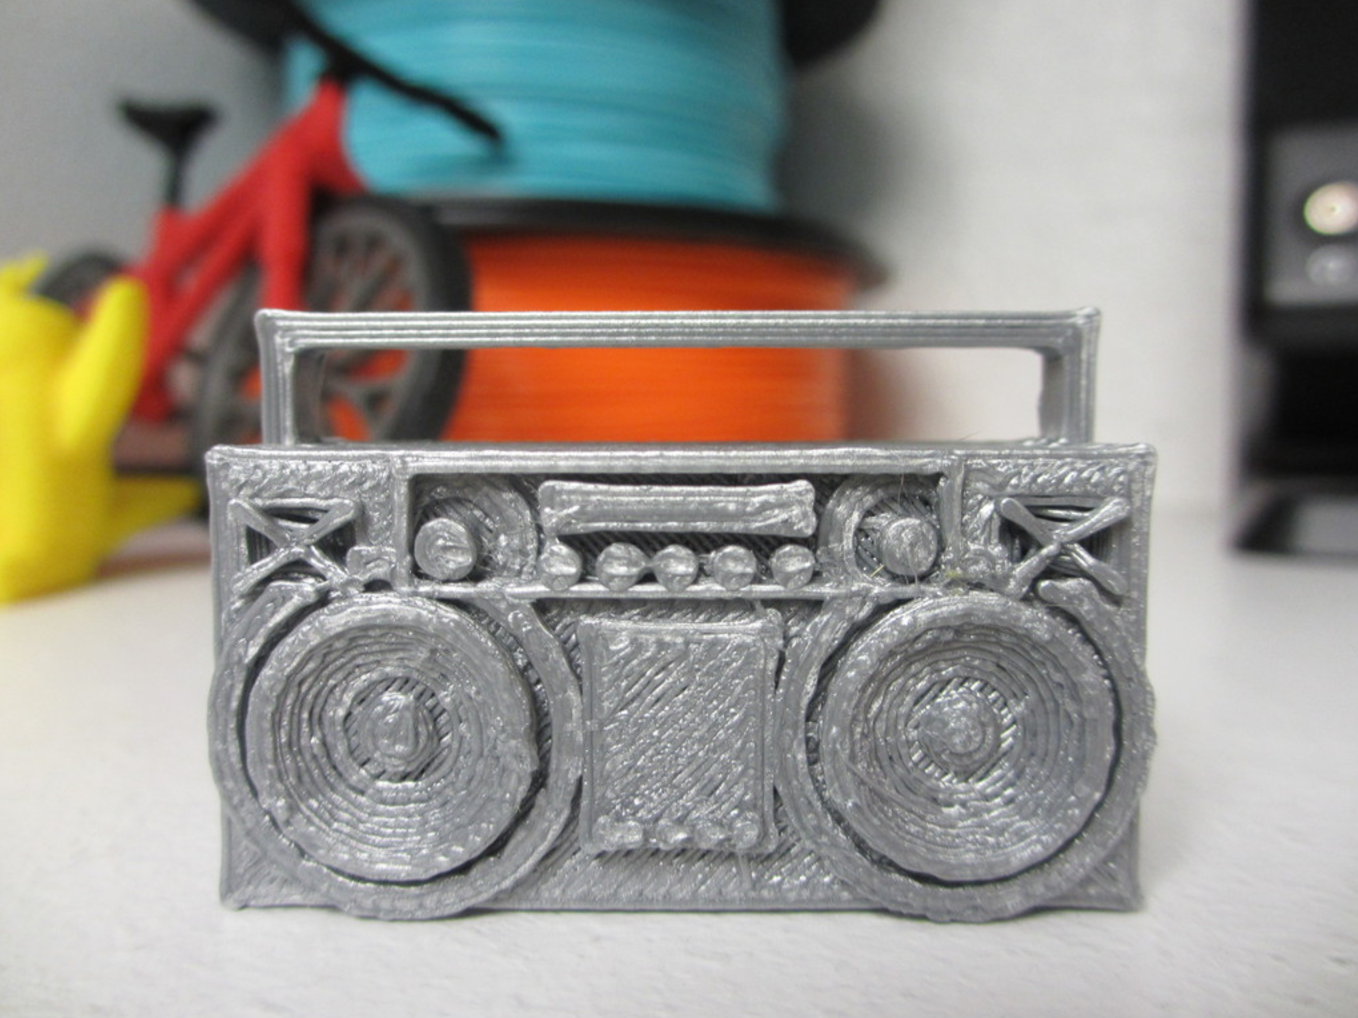 Capture d'écran 2017-01-23 à 11.33.57.png Download free STL file Boombox • 3D printer design, STRIX_3D